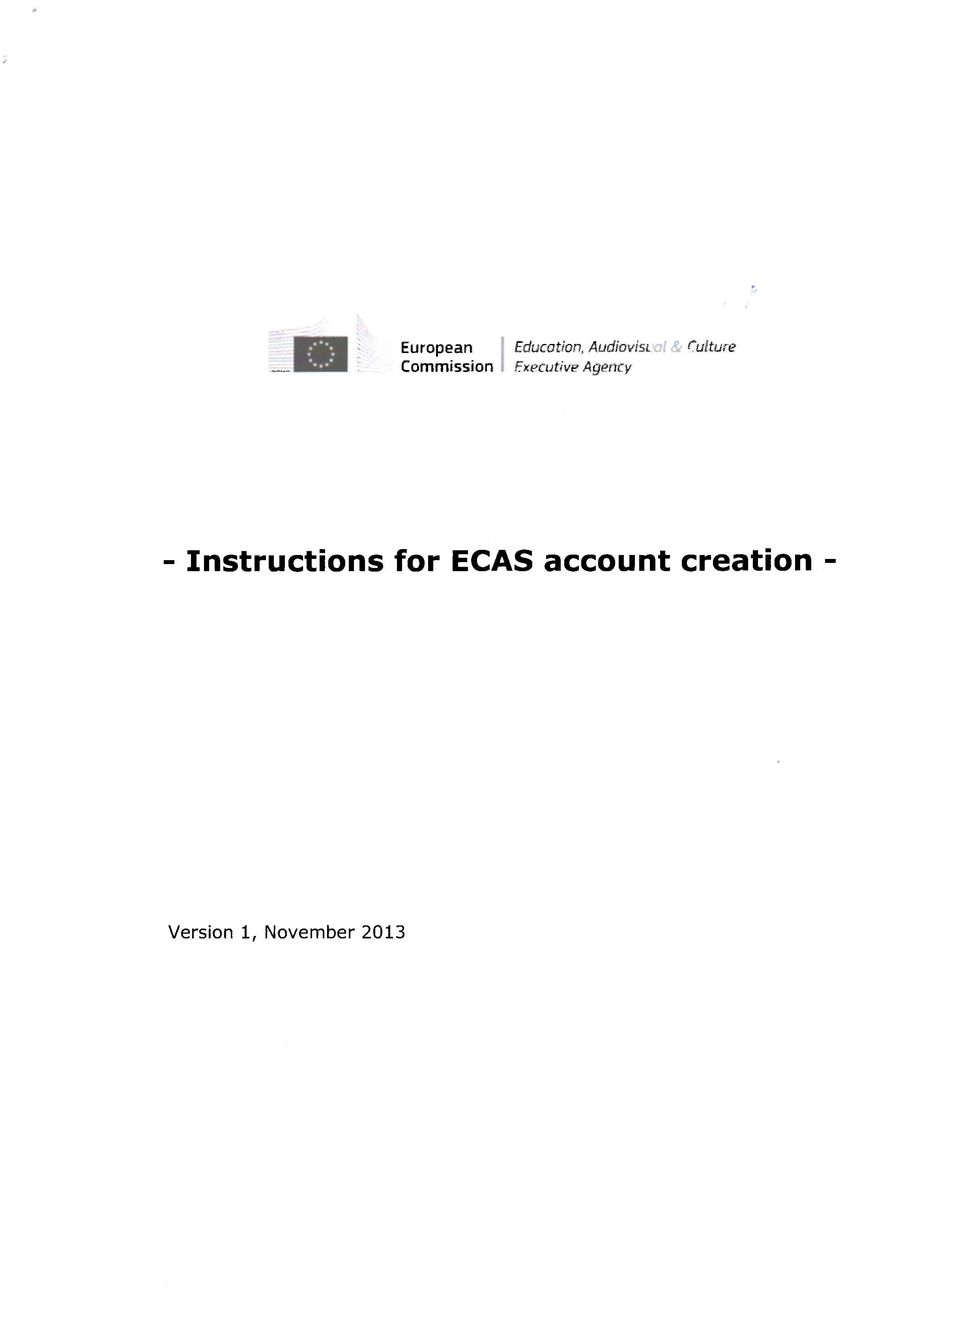 Culture - Instructions for ECAS